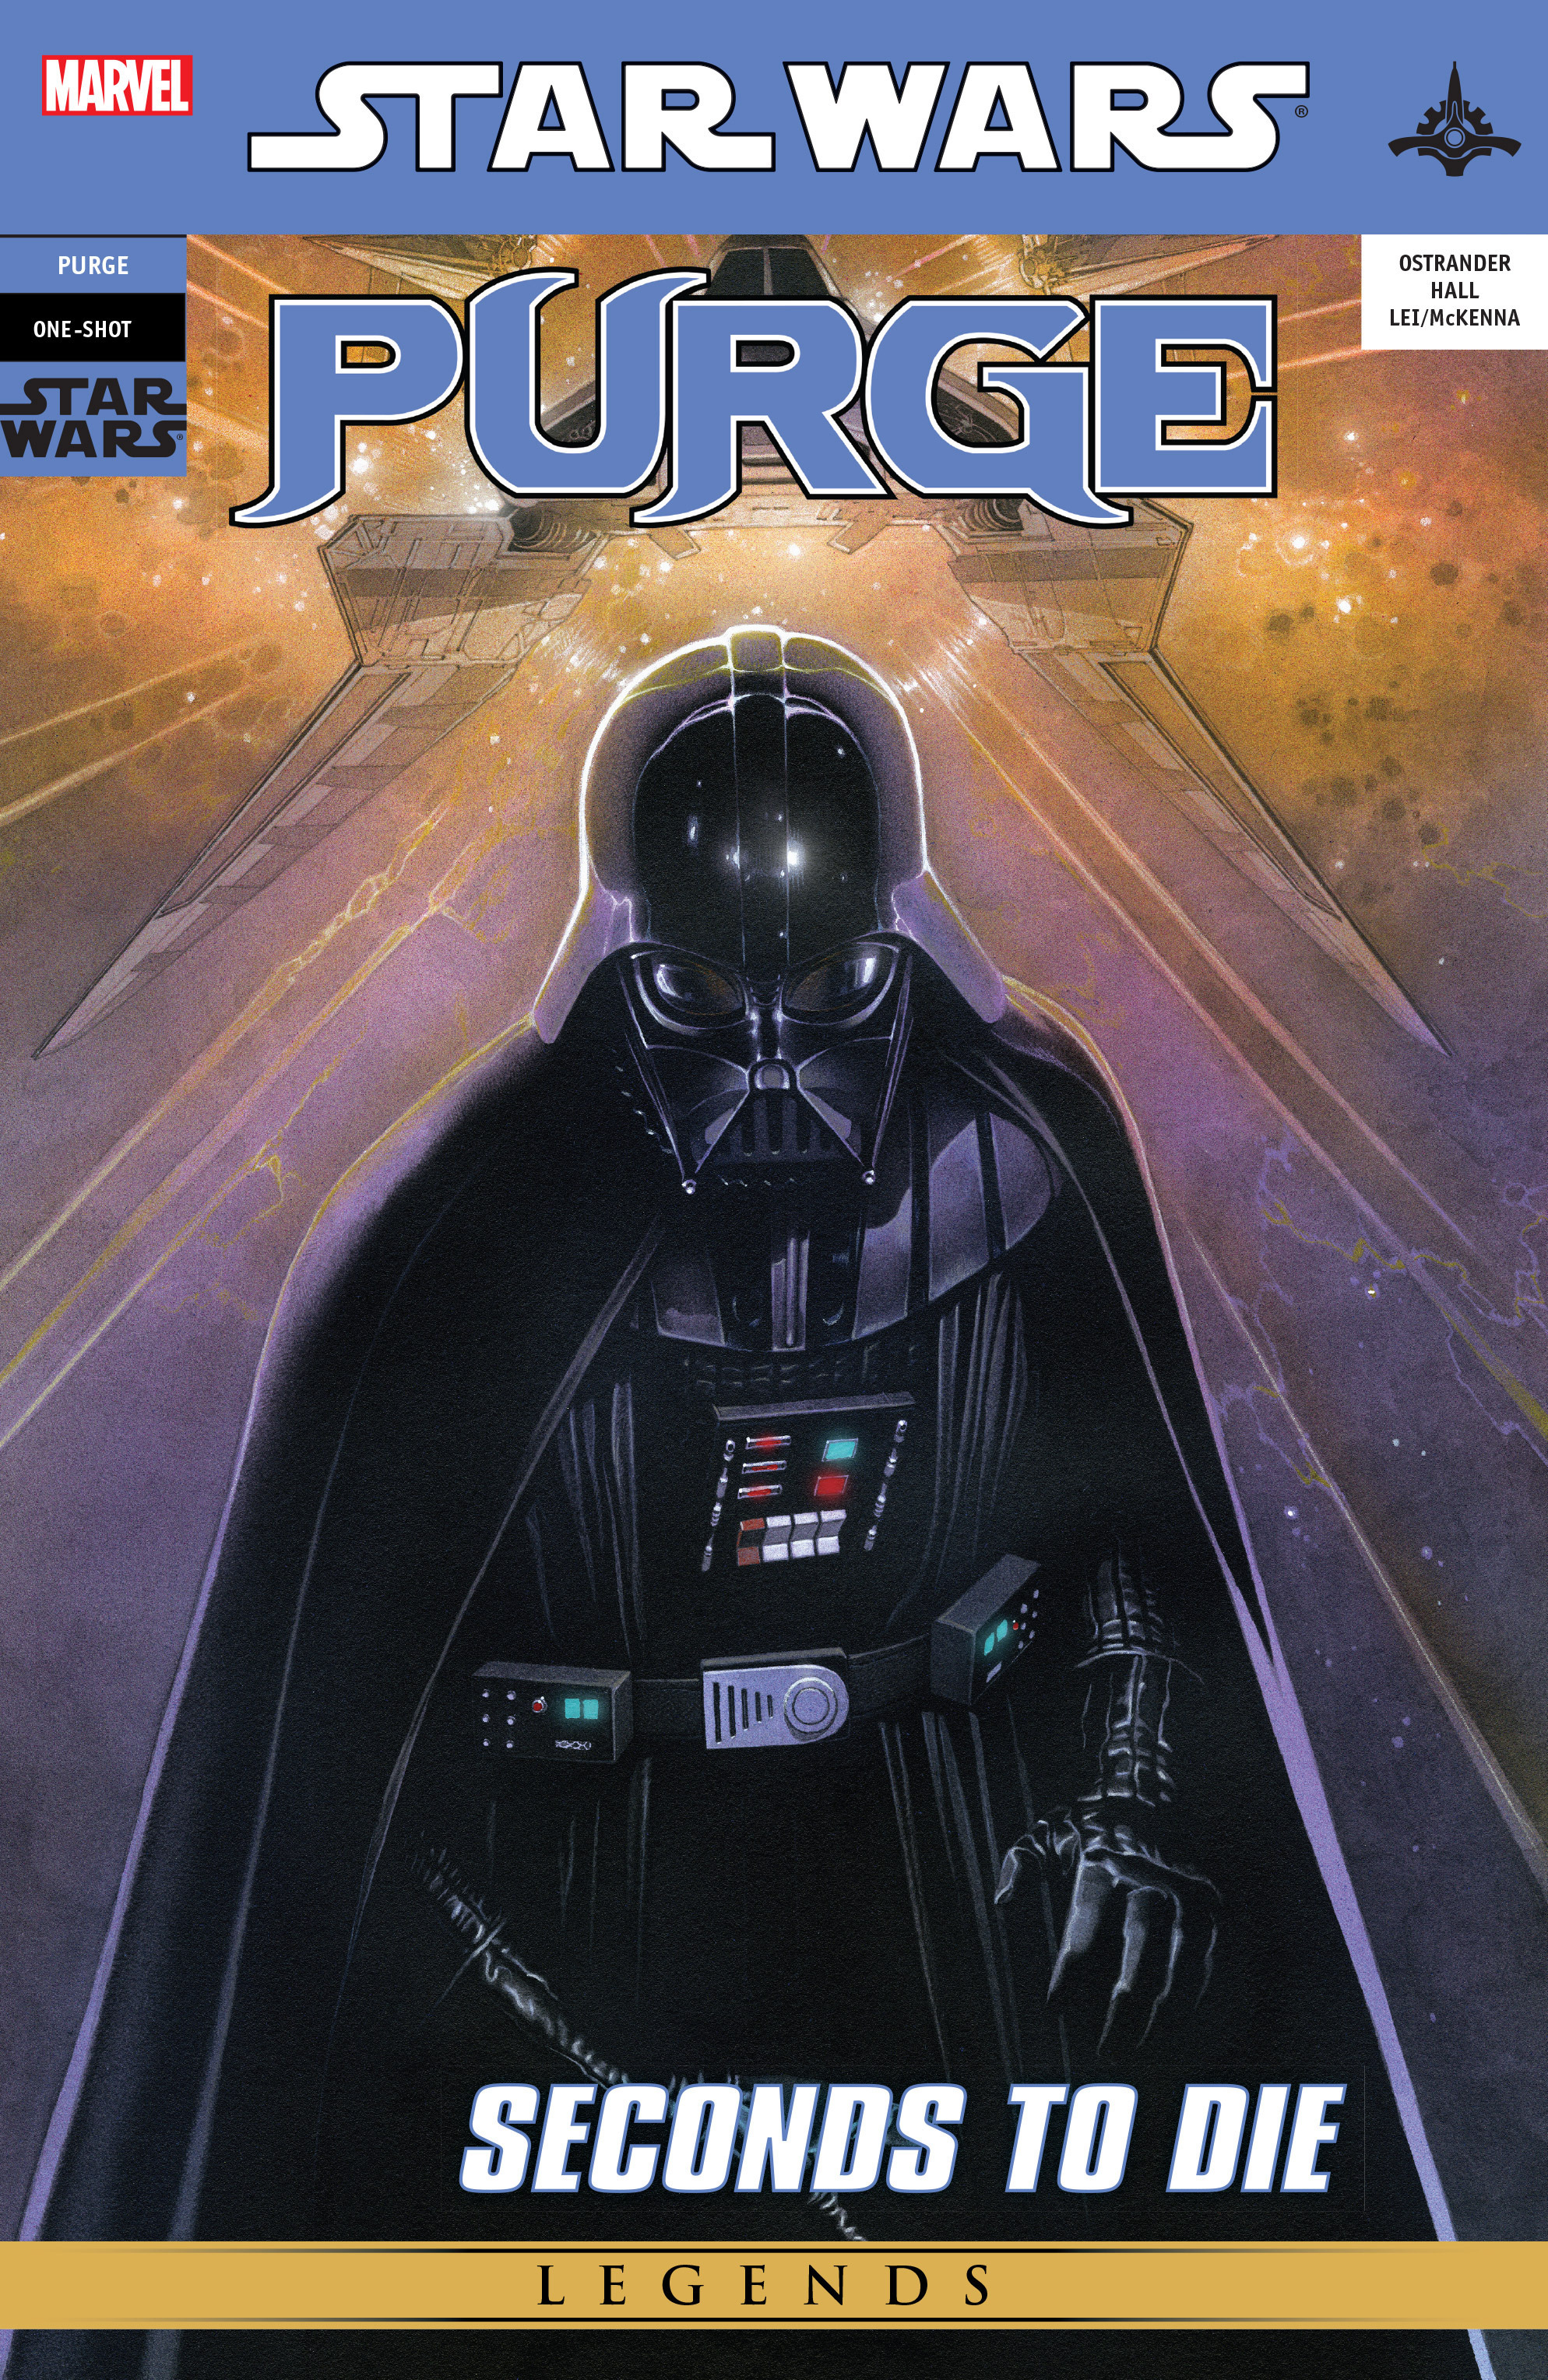 Star Wars: Purge - Seconds to Die Full Page 1